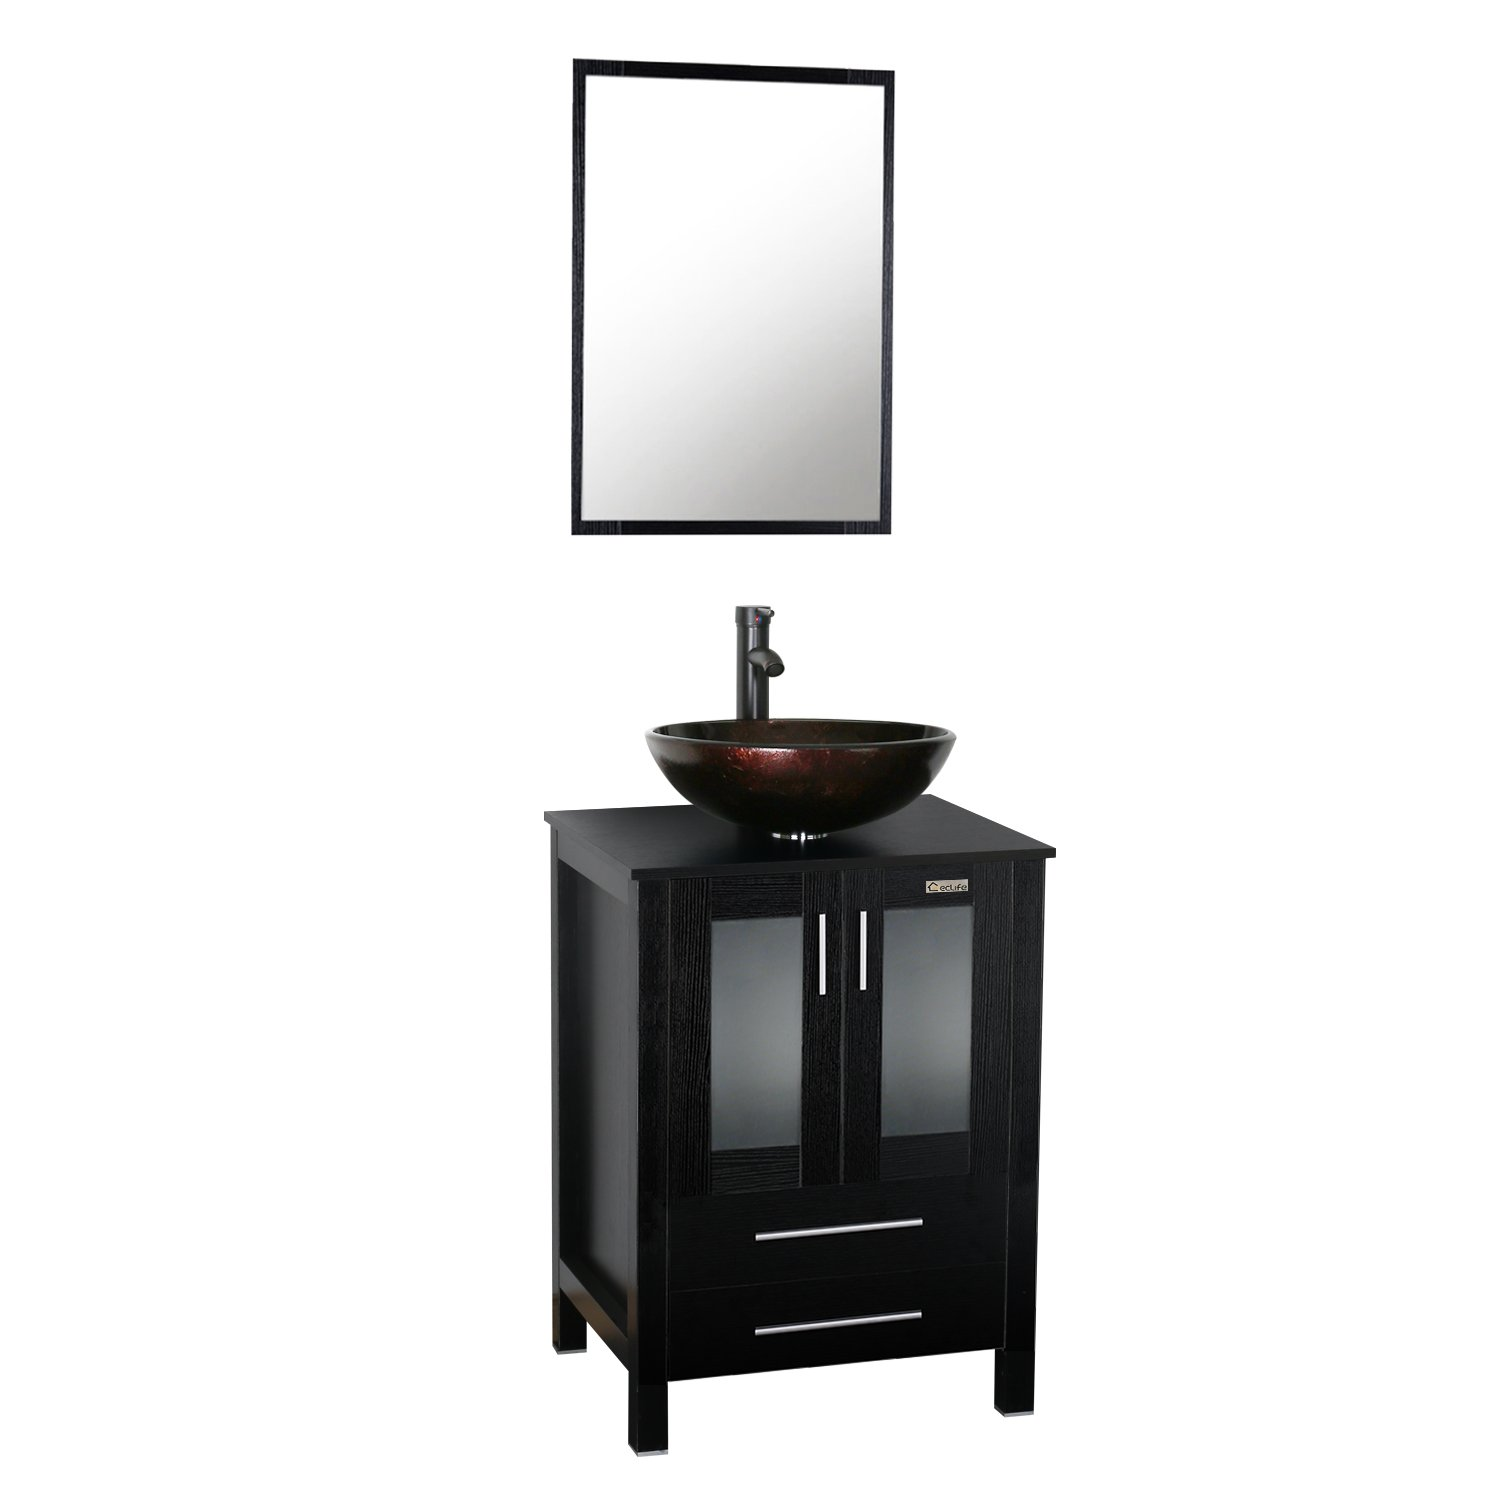 """Eclife New 24"""" Wood Bathroom Vanity Cabinet Solid Glass Sink Bowl Modern Contemporary Design 1.5 GPM ORB Faucet and Pop Up Drain A09B02"""